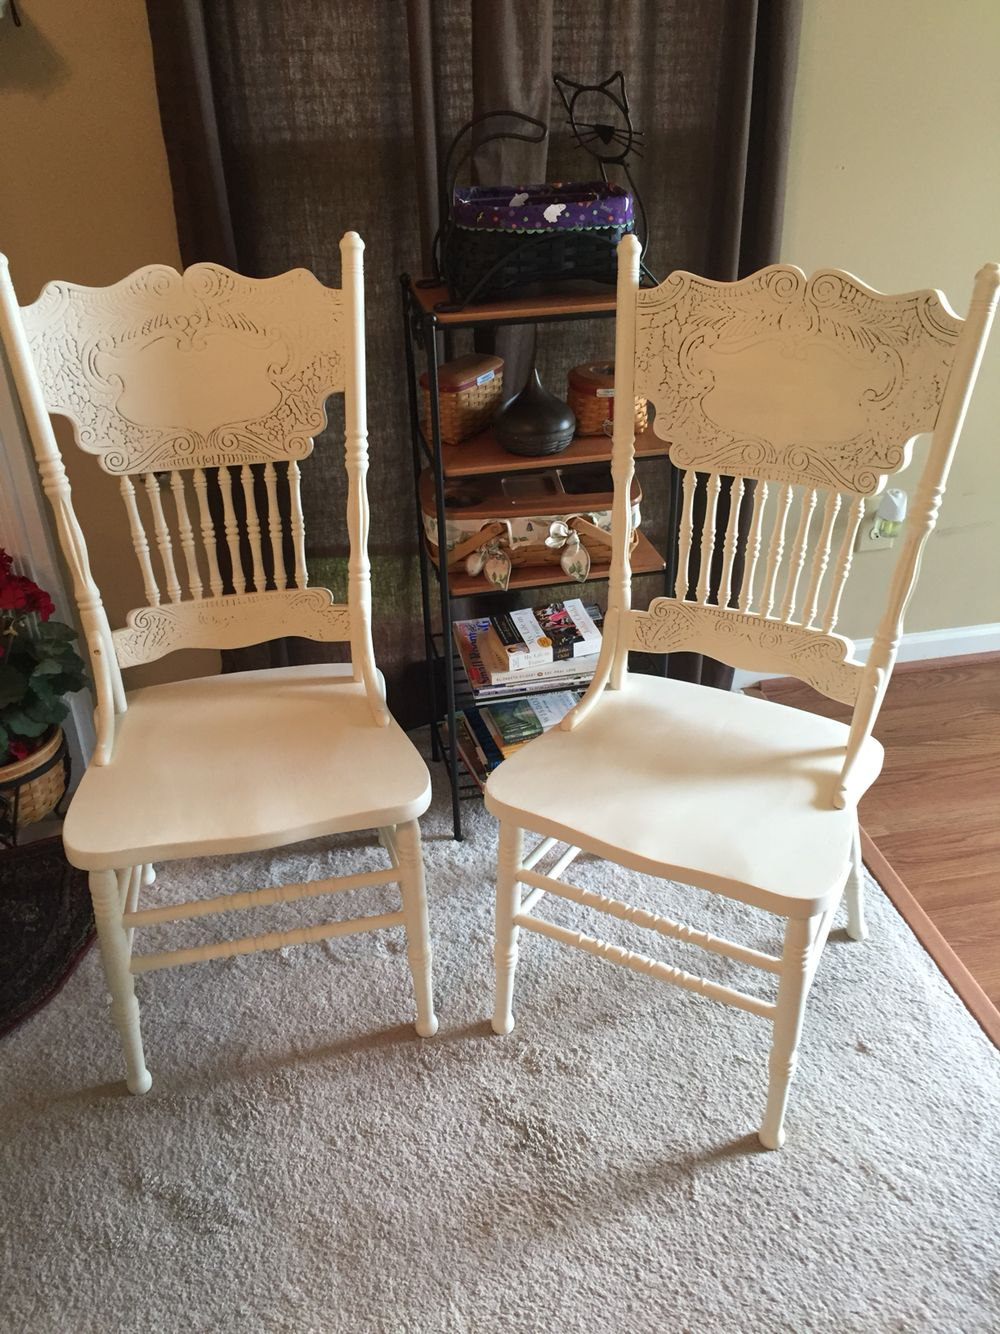 Sold Vintage Pressed Back chairs in AS Old White - Sold Vintage Pressed Back Chairs In AS Old White Daisy's Doo